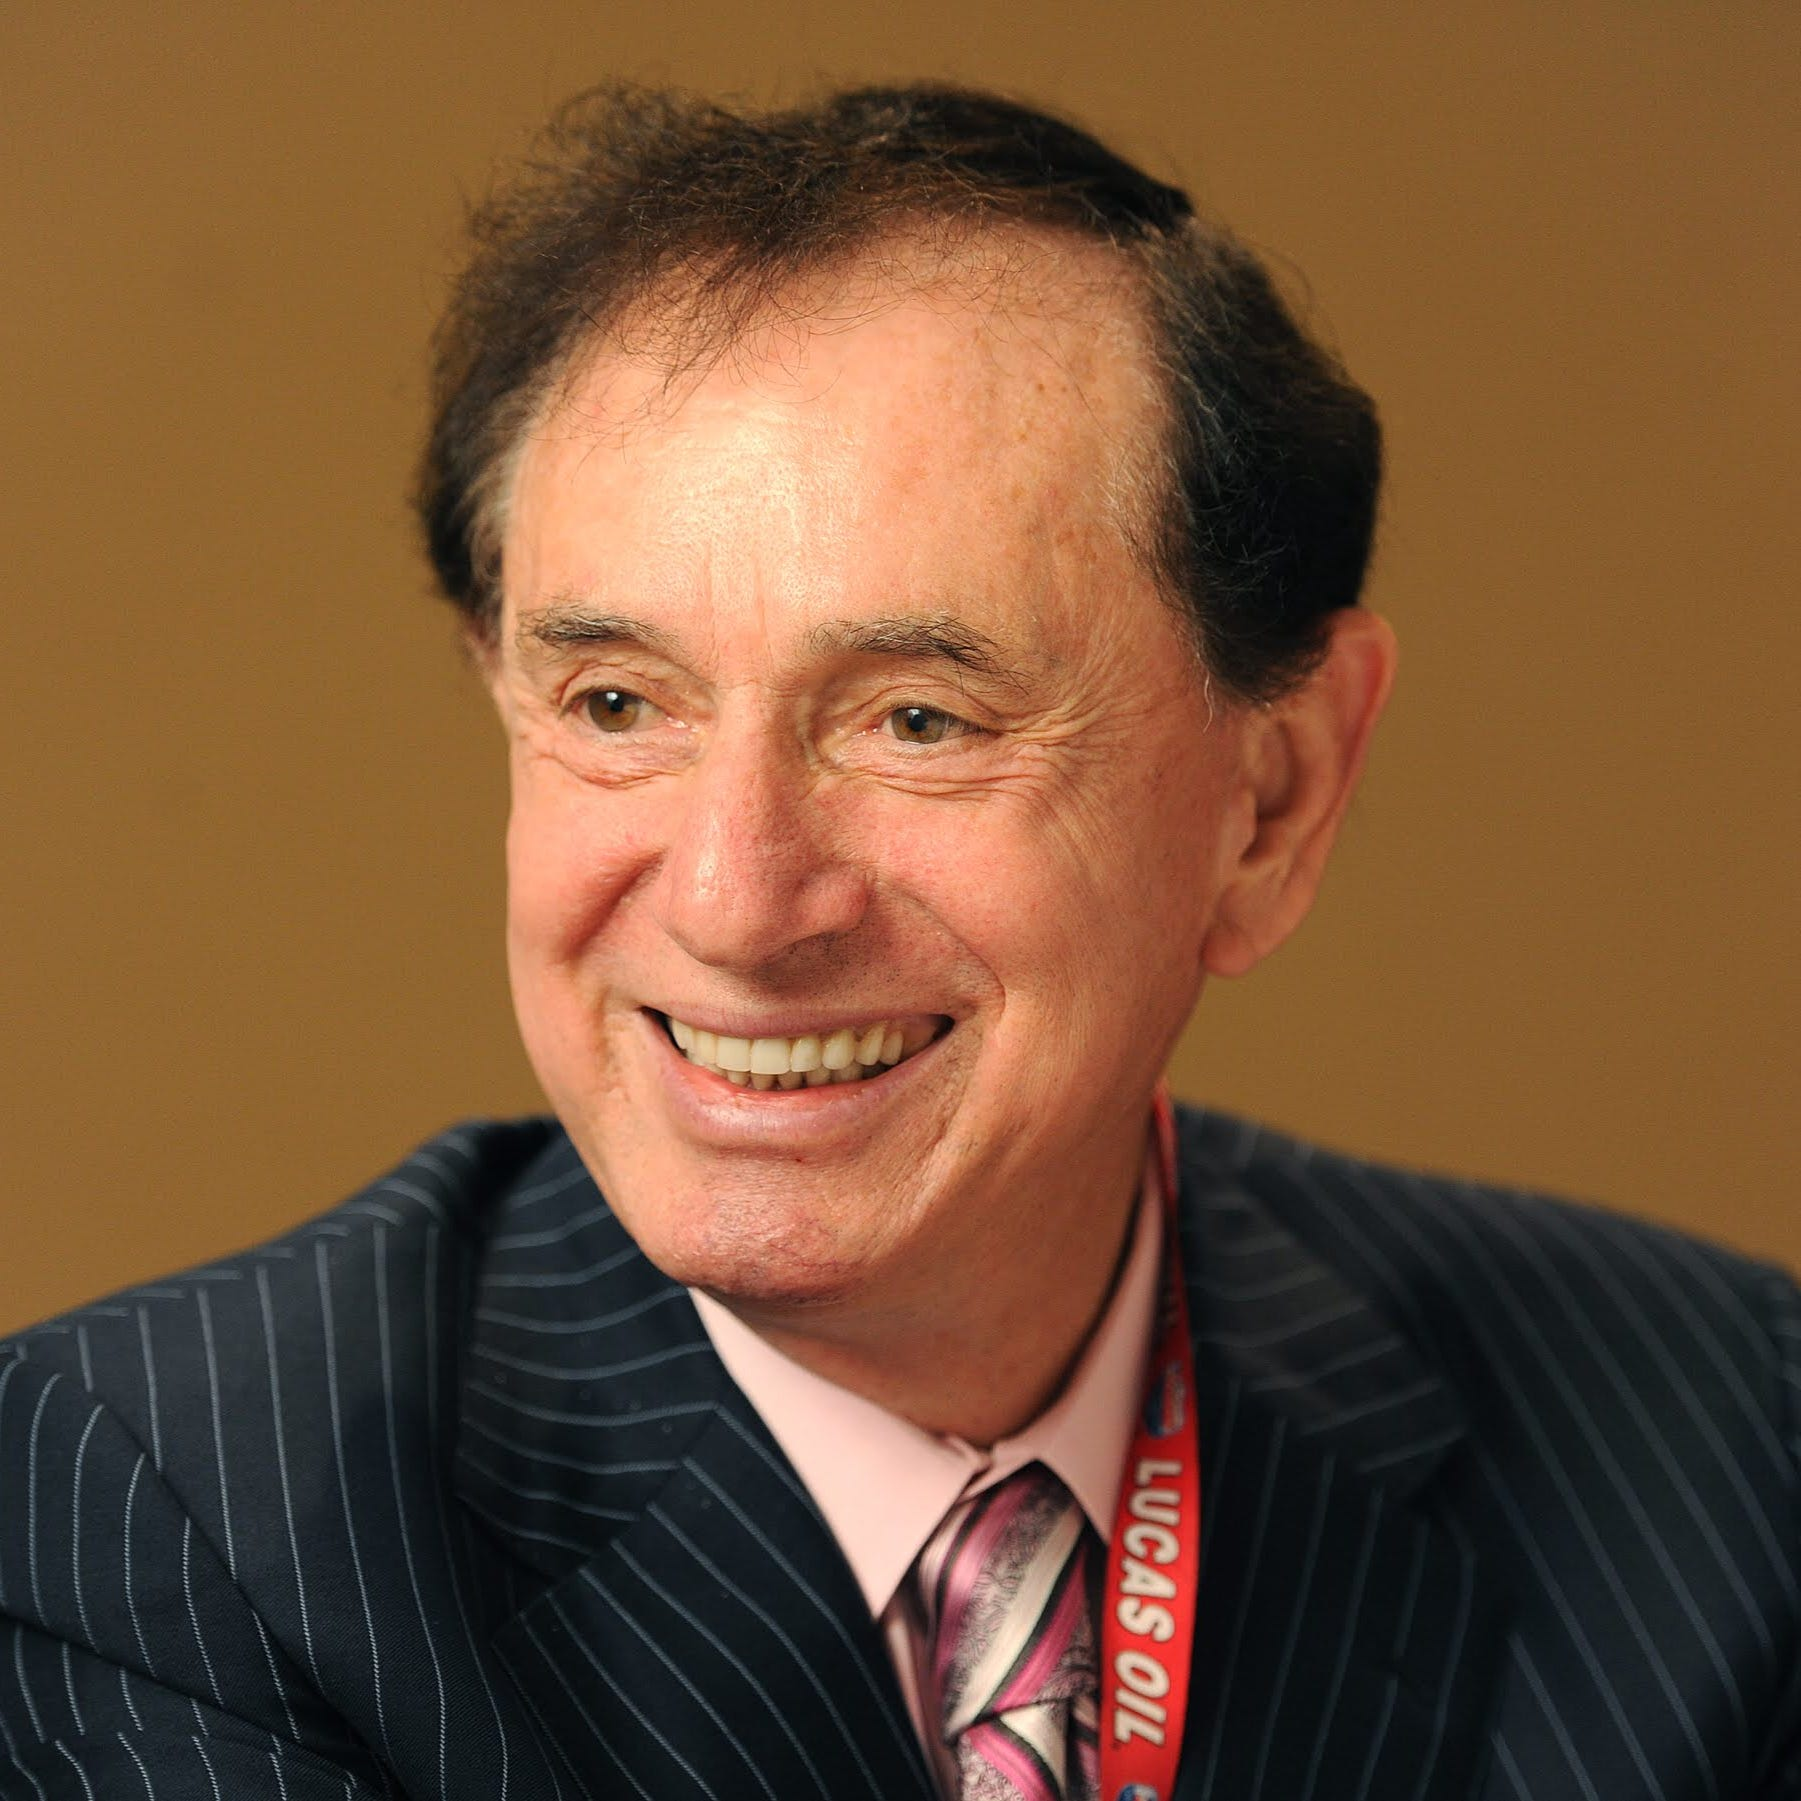 Lucas Oil's Forrest Lucas is making 'American dream' movies with Ludacris, Trace Adkins